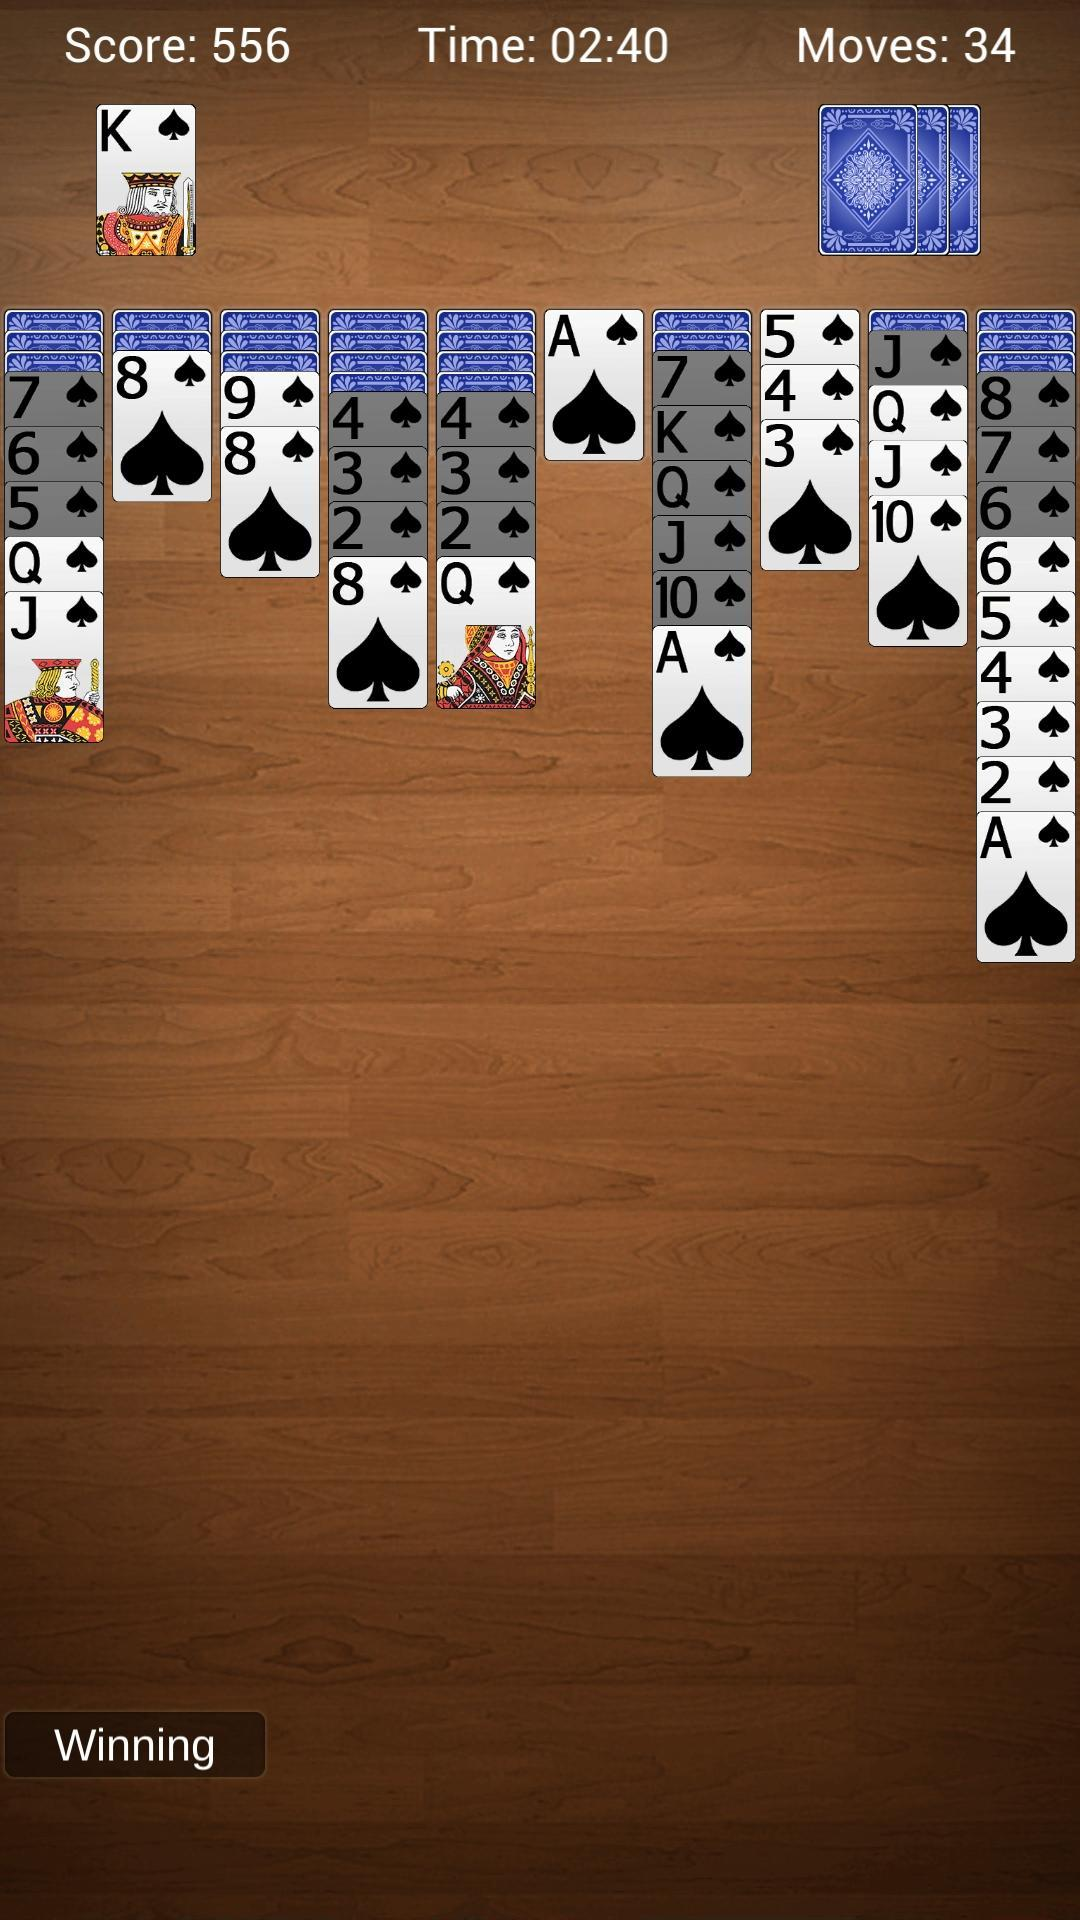 Spider Solitaire - Best Classic Card Games 1.8.0.20210225 Screenshot 10